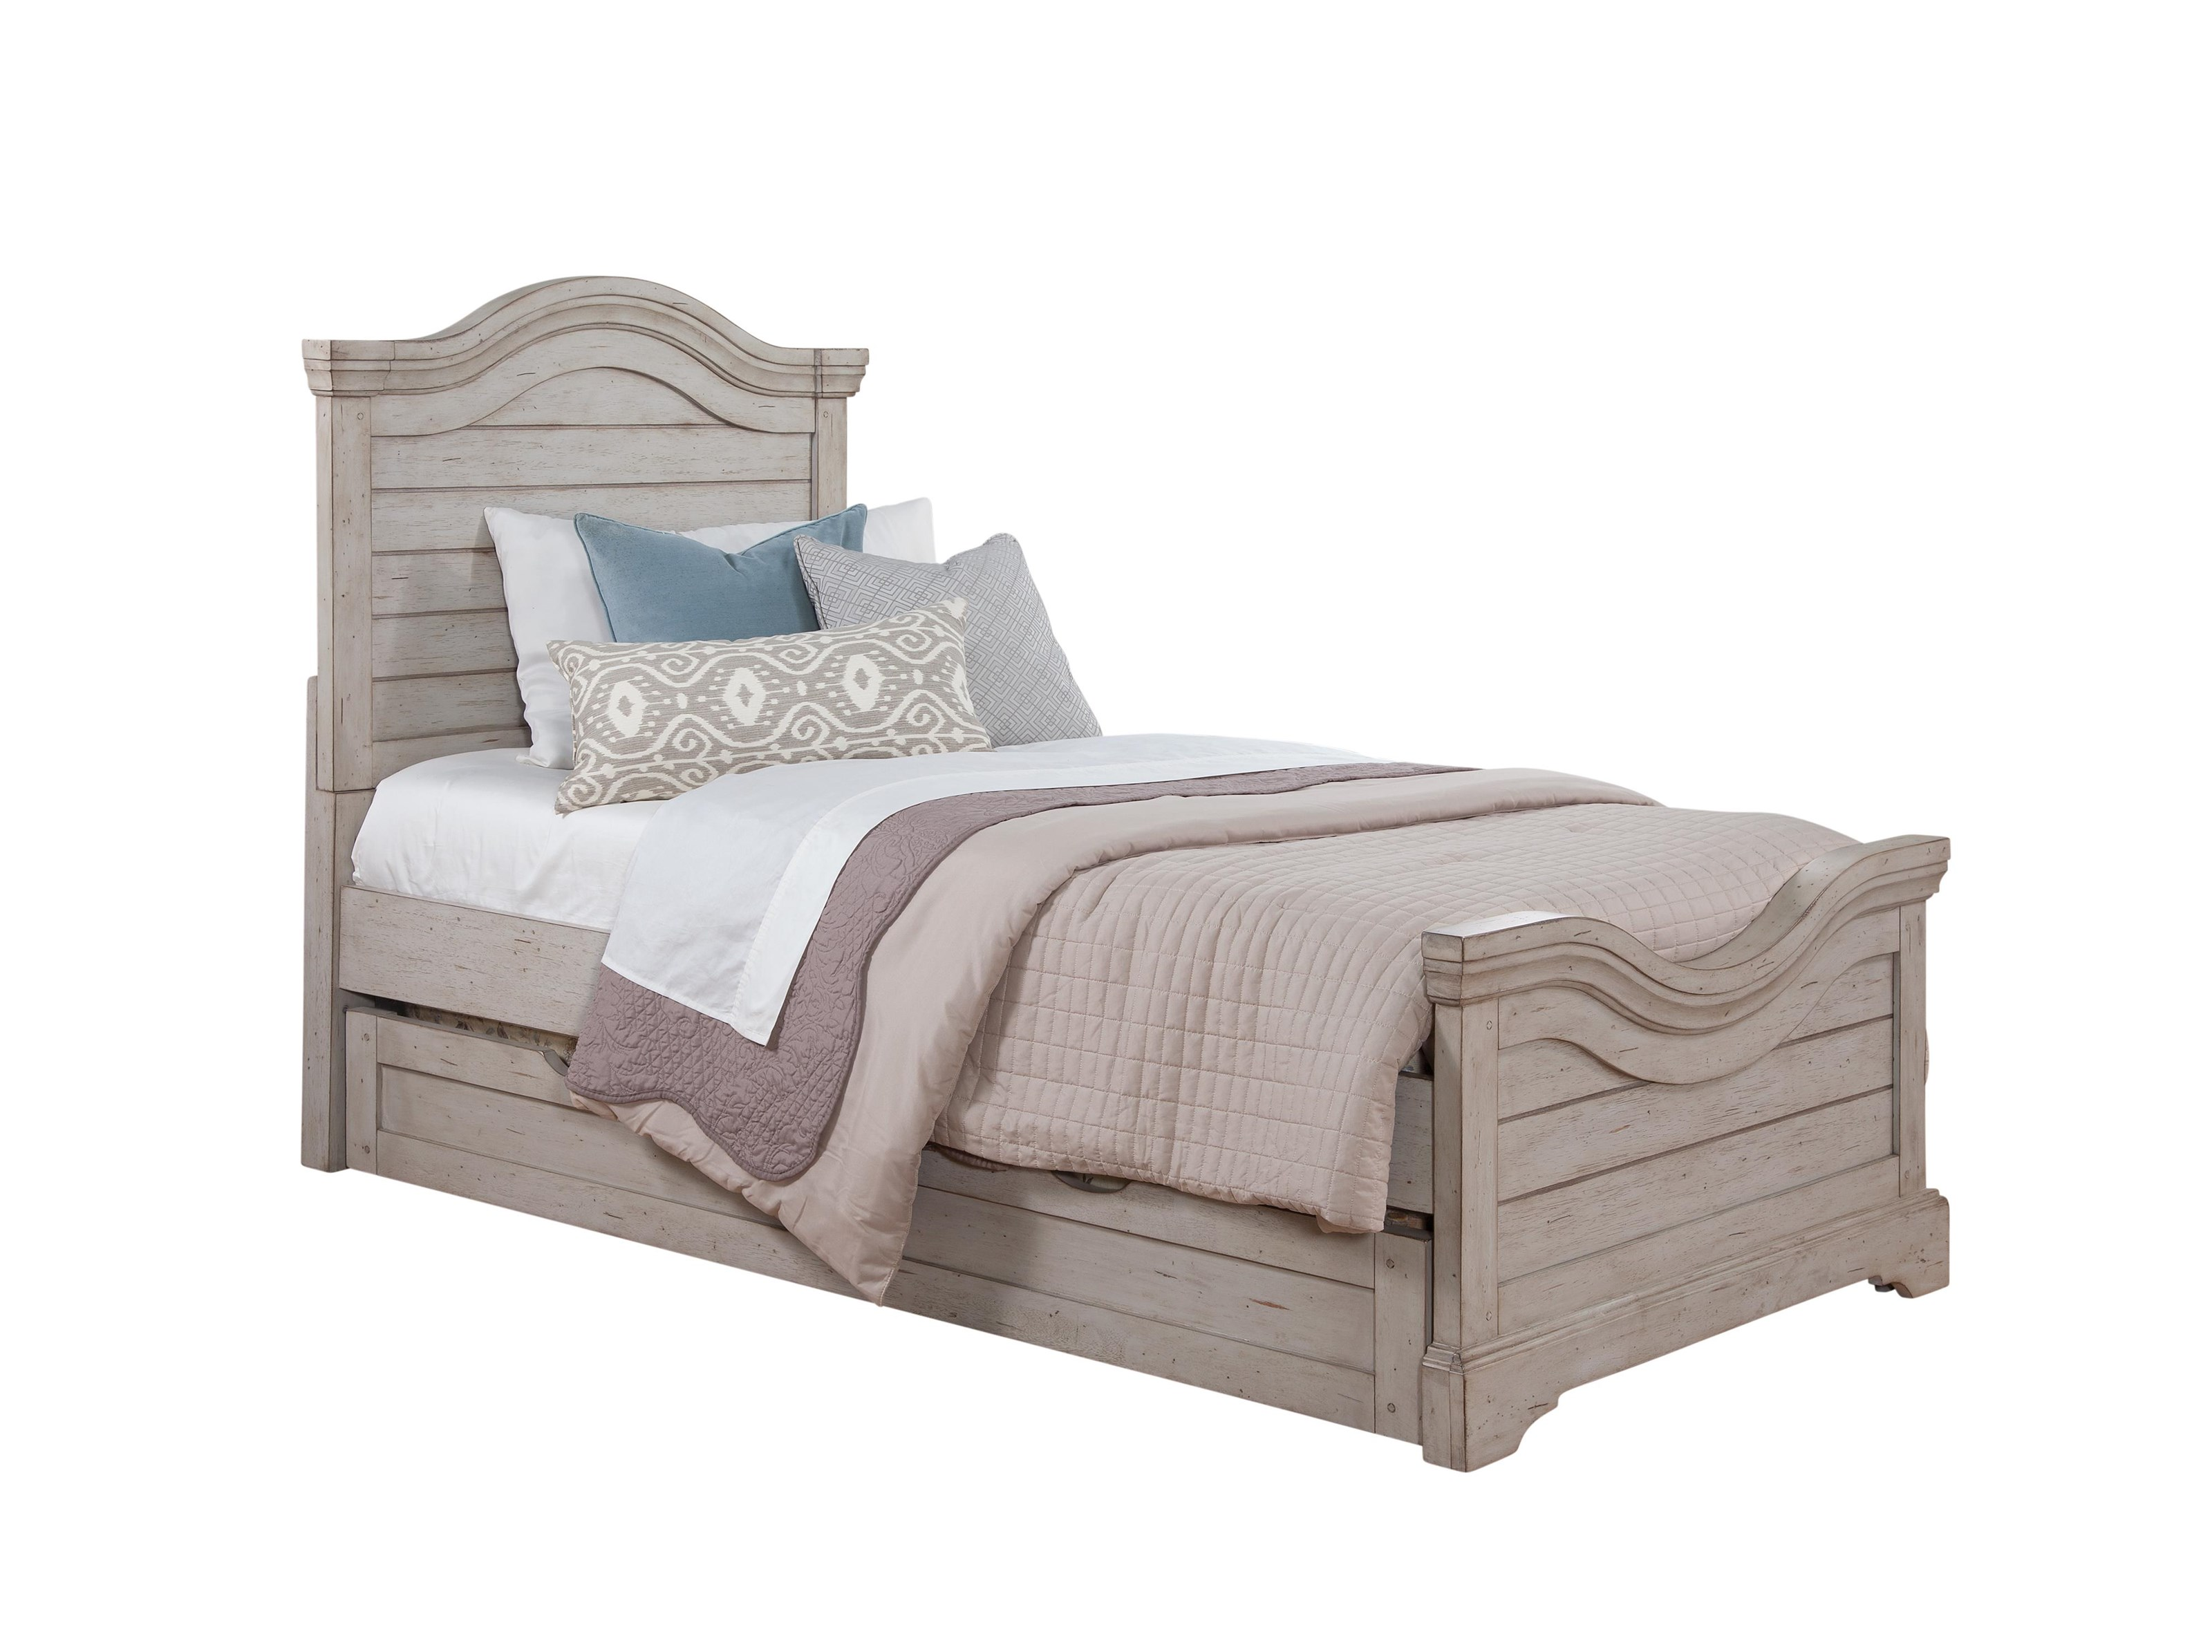 Stonebrook Youth in Antique Gray Twin Panel Bed by American Woodcrafters at Johnny Janosik